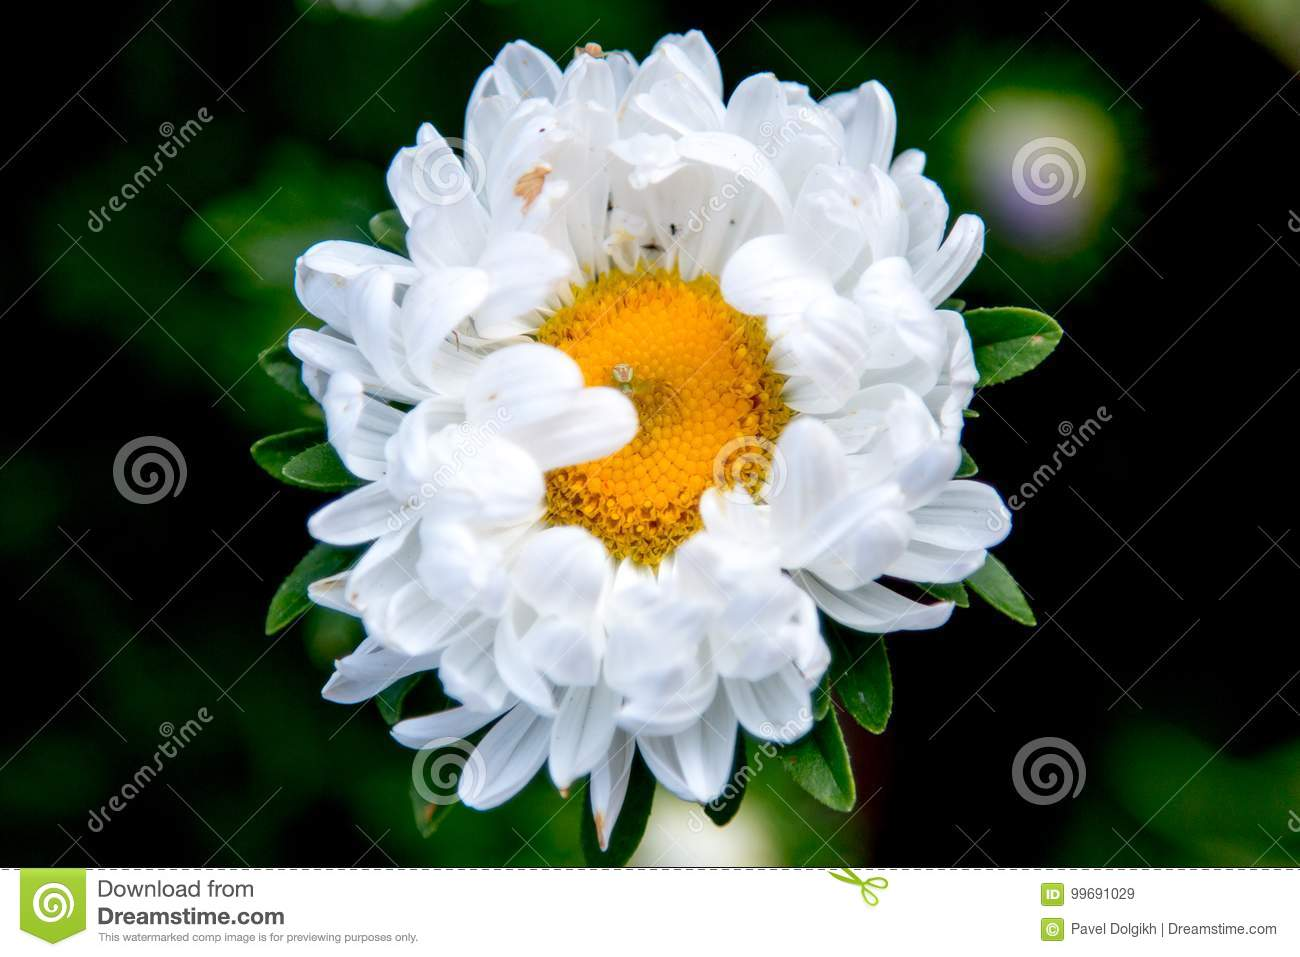 White Flower With Spider In The Center Stock Image Image Of Center